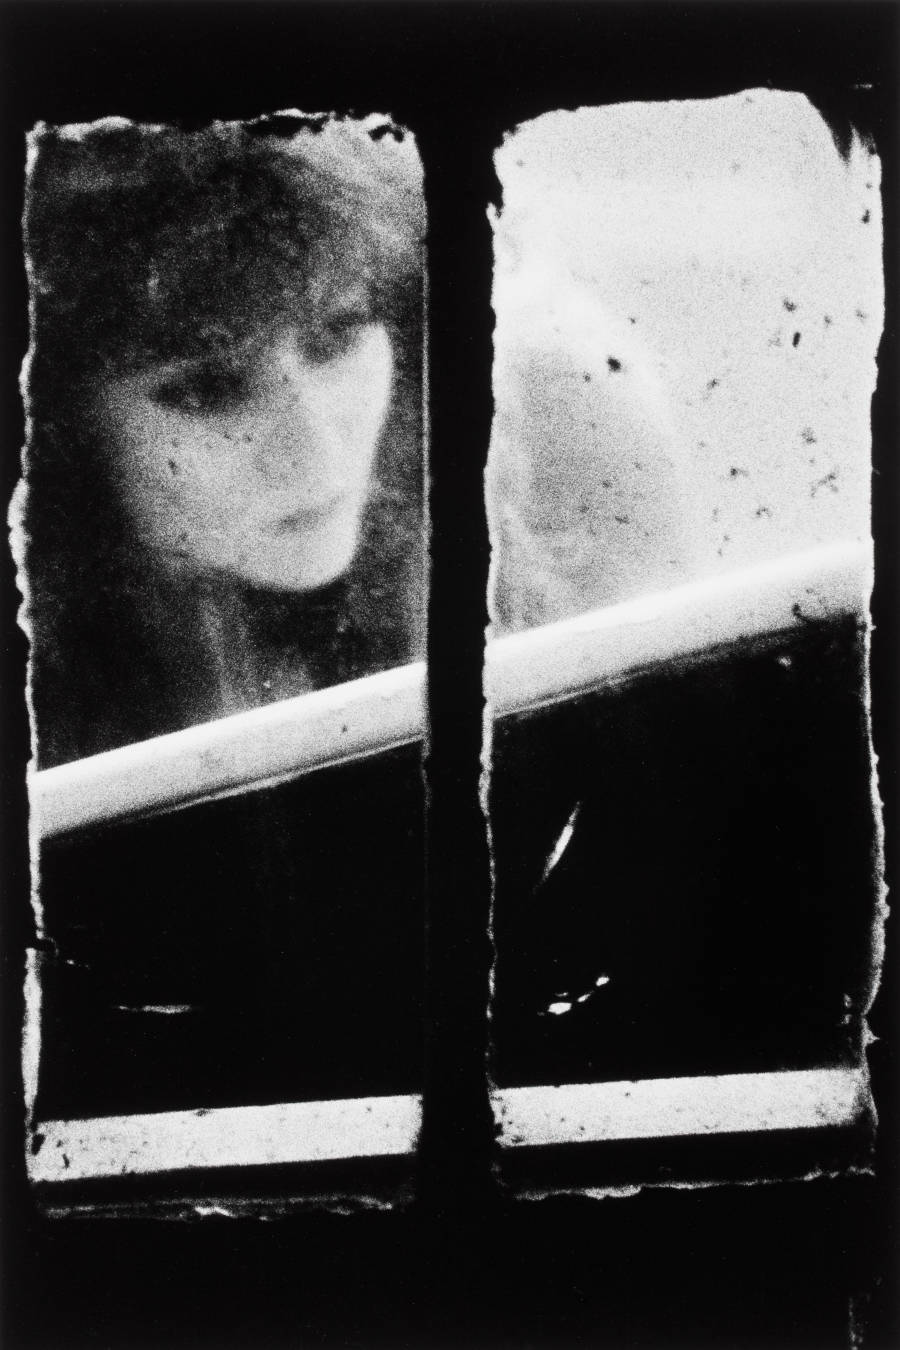 Dirty Windows Series #19 (1994) by Merry Alpern in the summer exhibition Public/Private/Portrait at ICP.